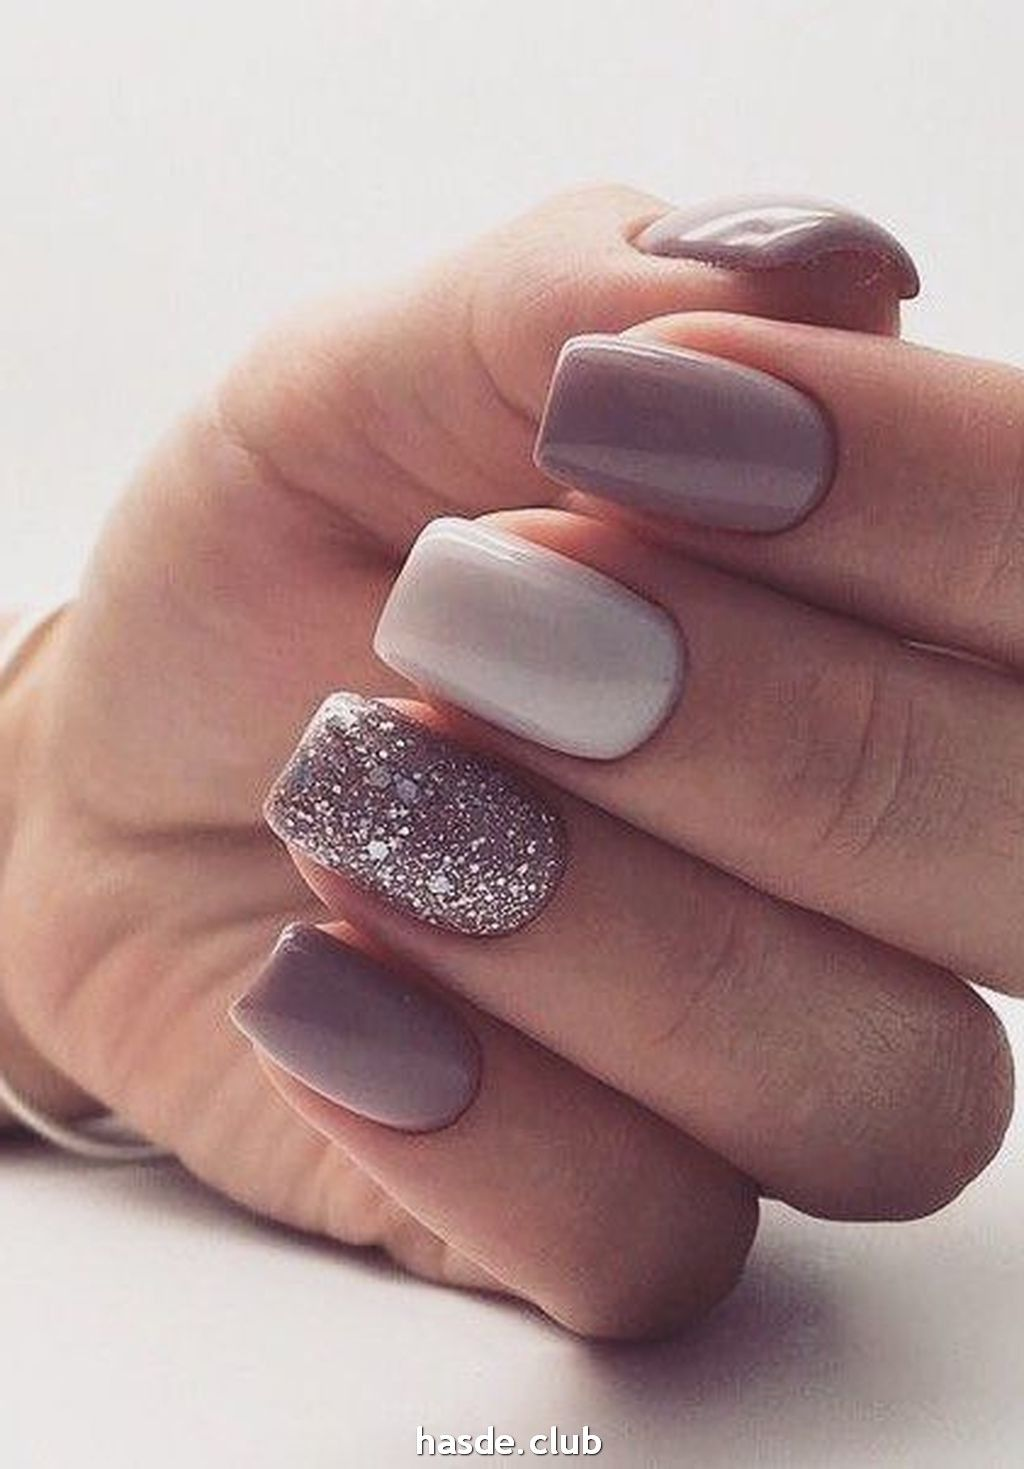 30 Inspiring Winter Nails Color Trend 2020 In 2020 Nail Colors Winter Nail Color Trends Nail Colors